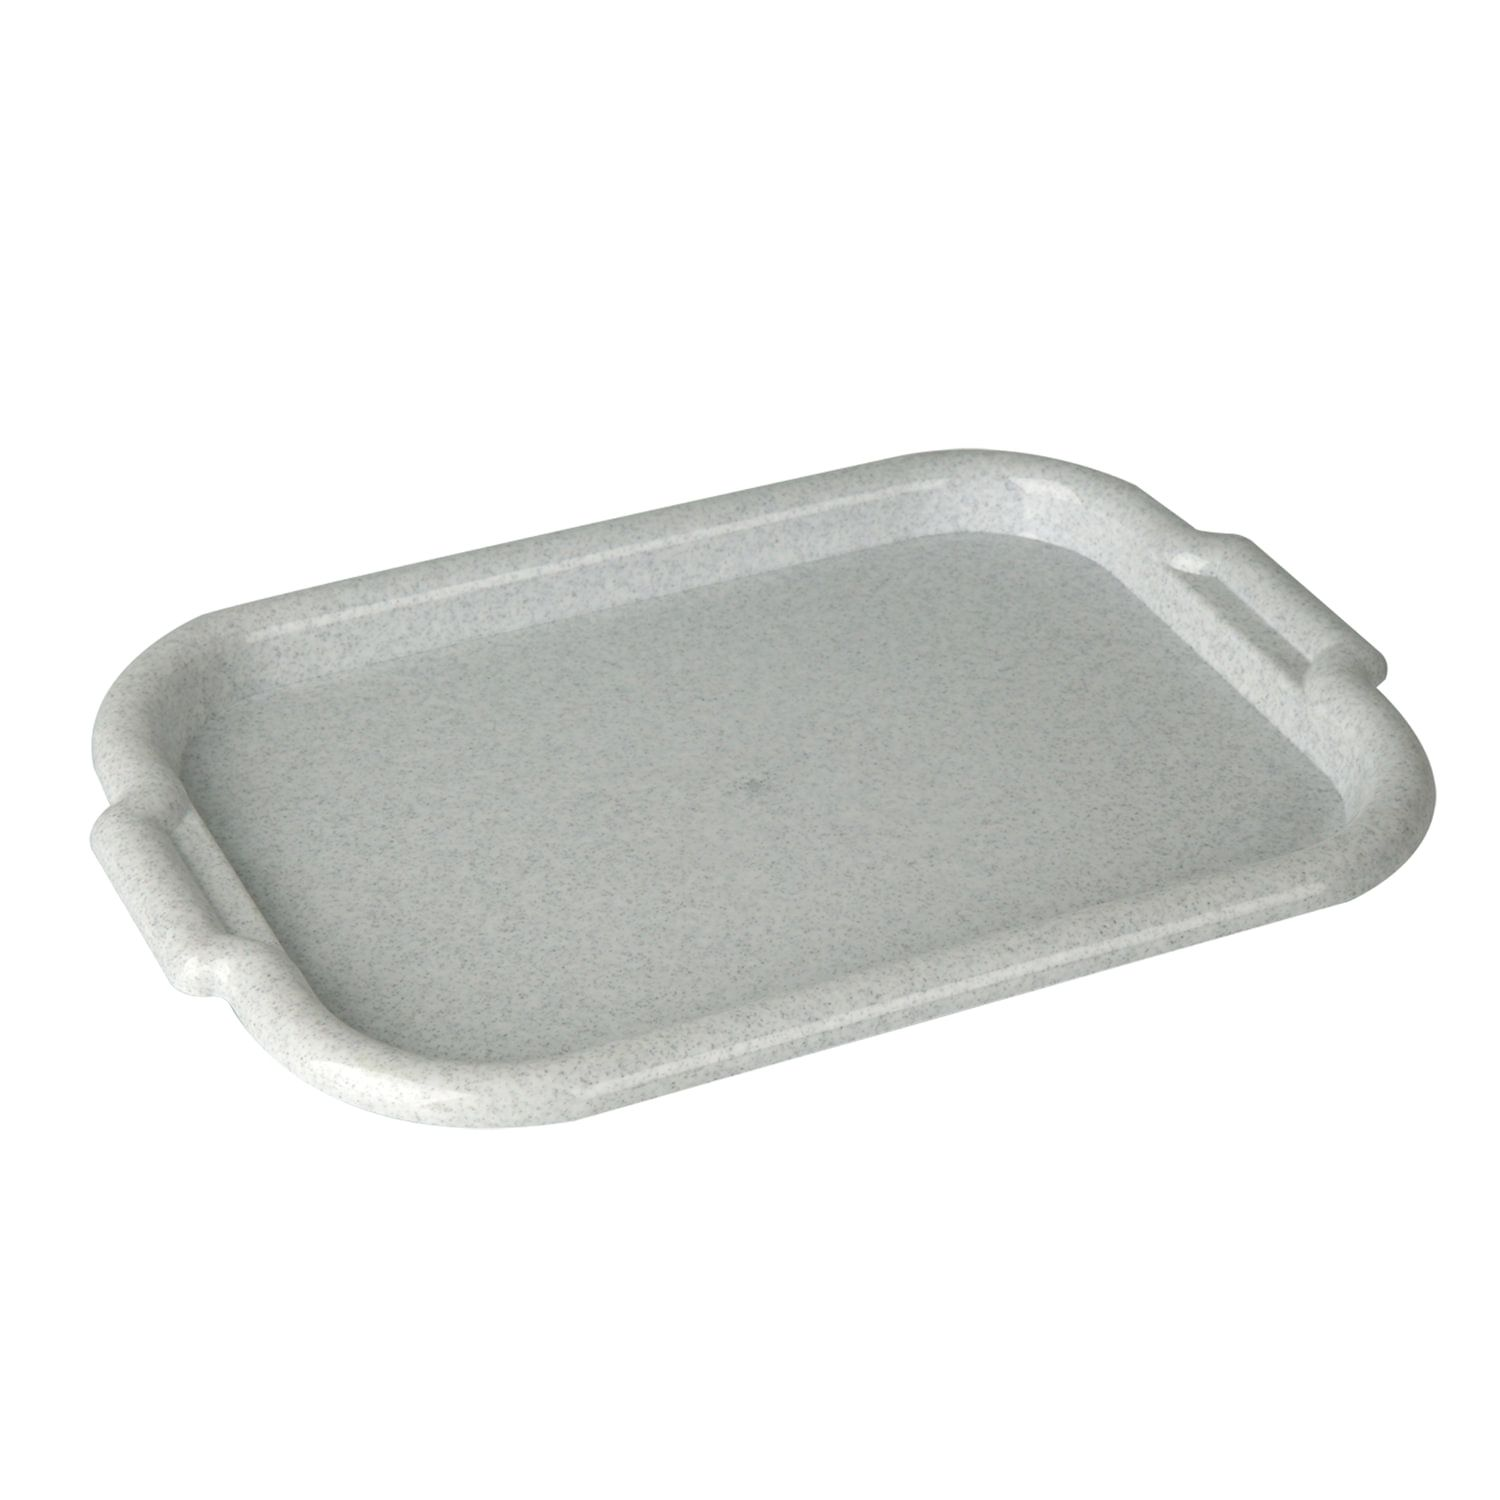 IDEA / Universal tray, large, 33x49 cm, marble / white